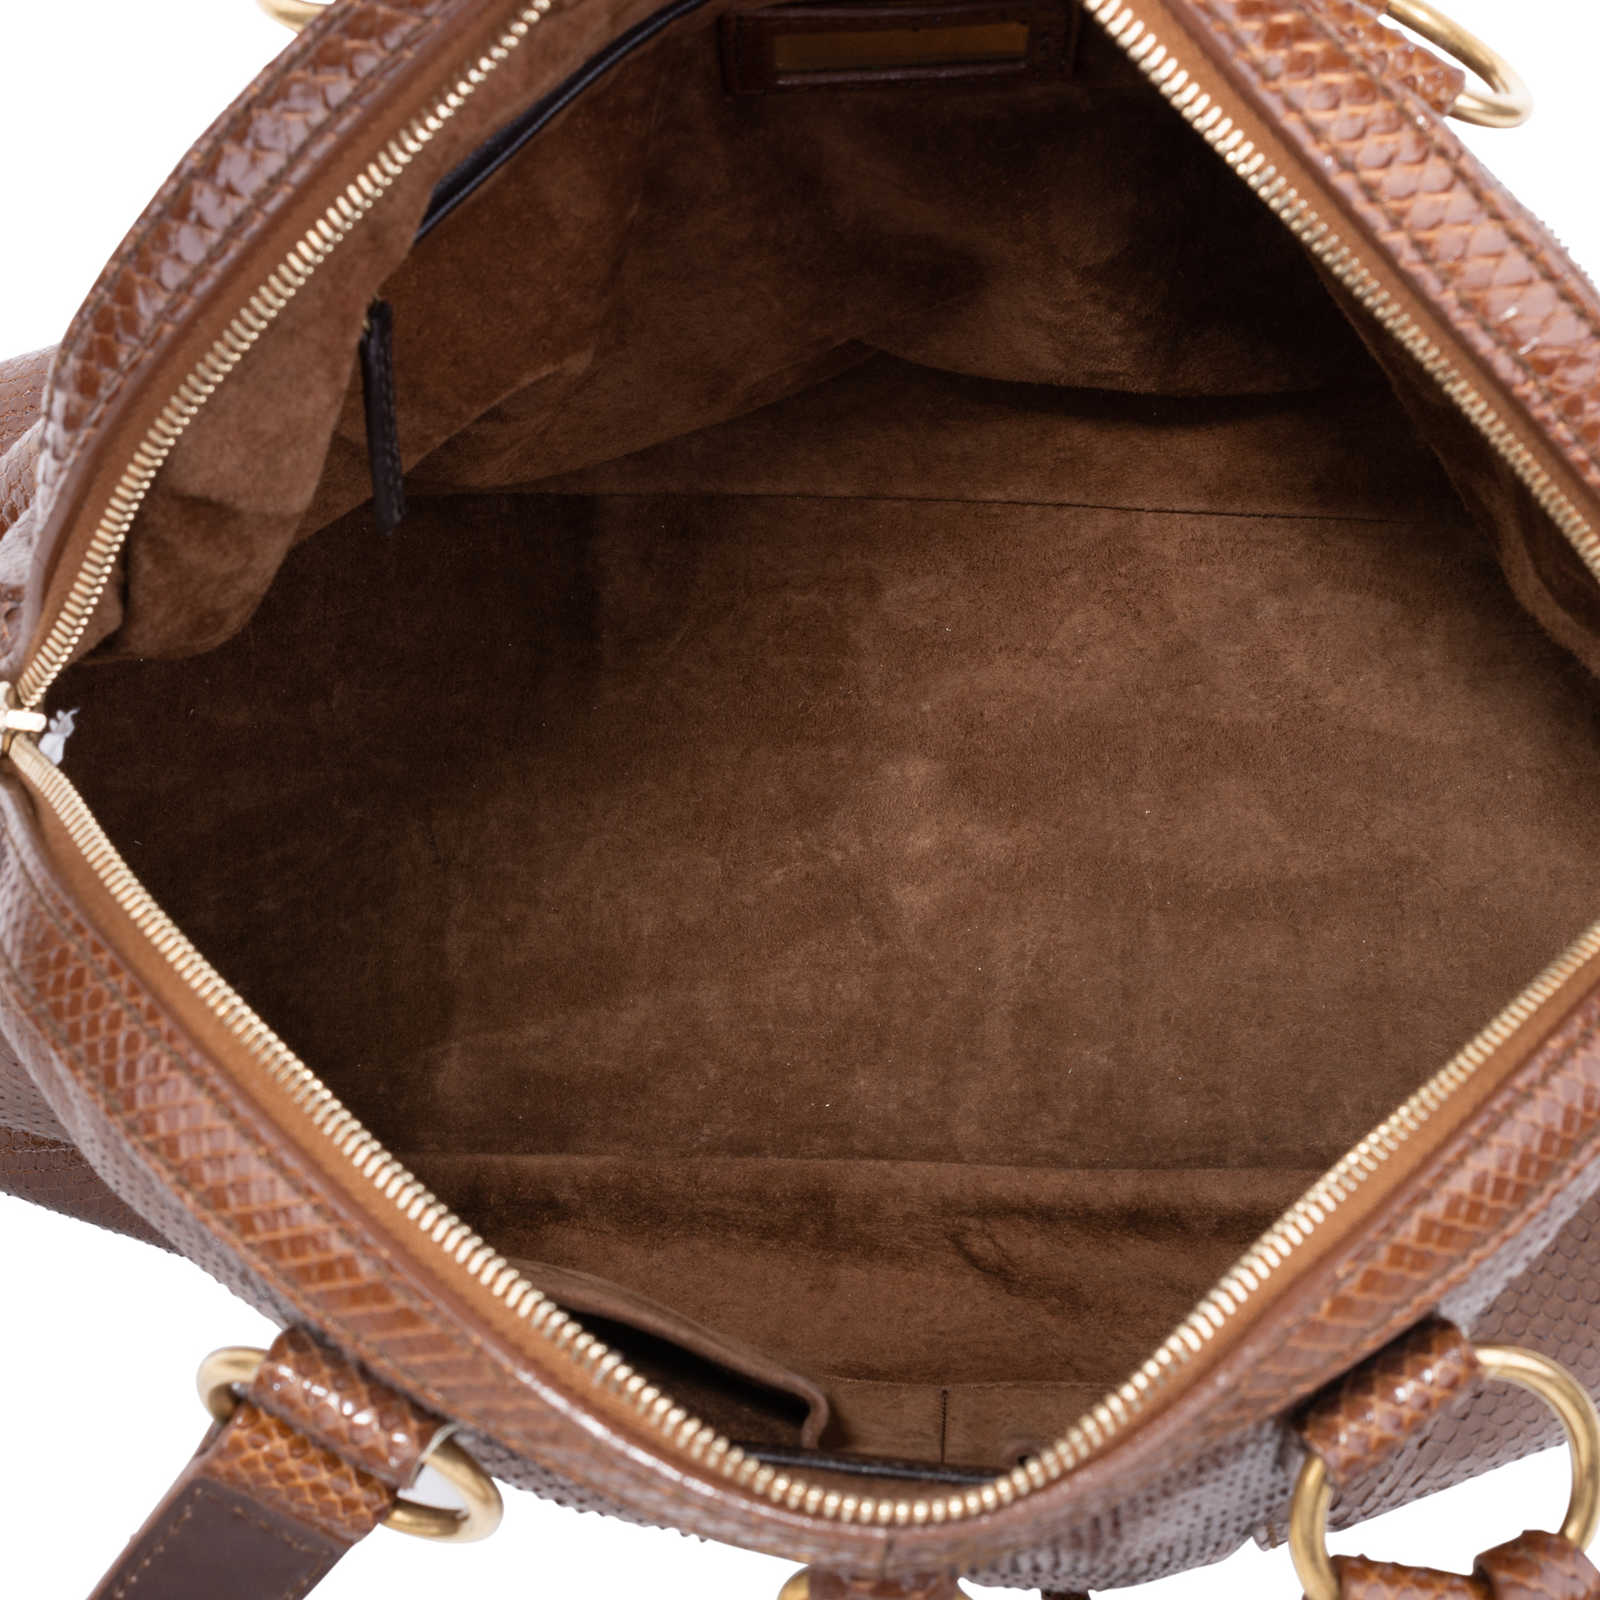 584f1f93df96 ... Authentic Pre Owned Yves Saint Laurent Large Python Muse Bag (PSS-597- 00003 ...